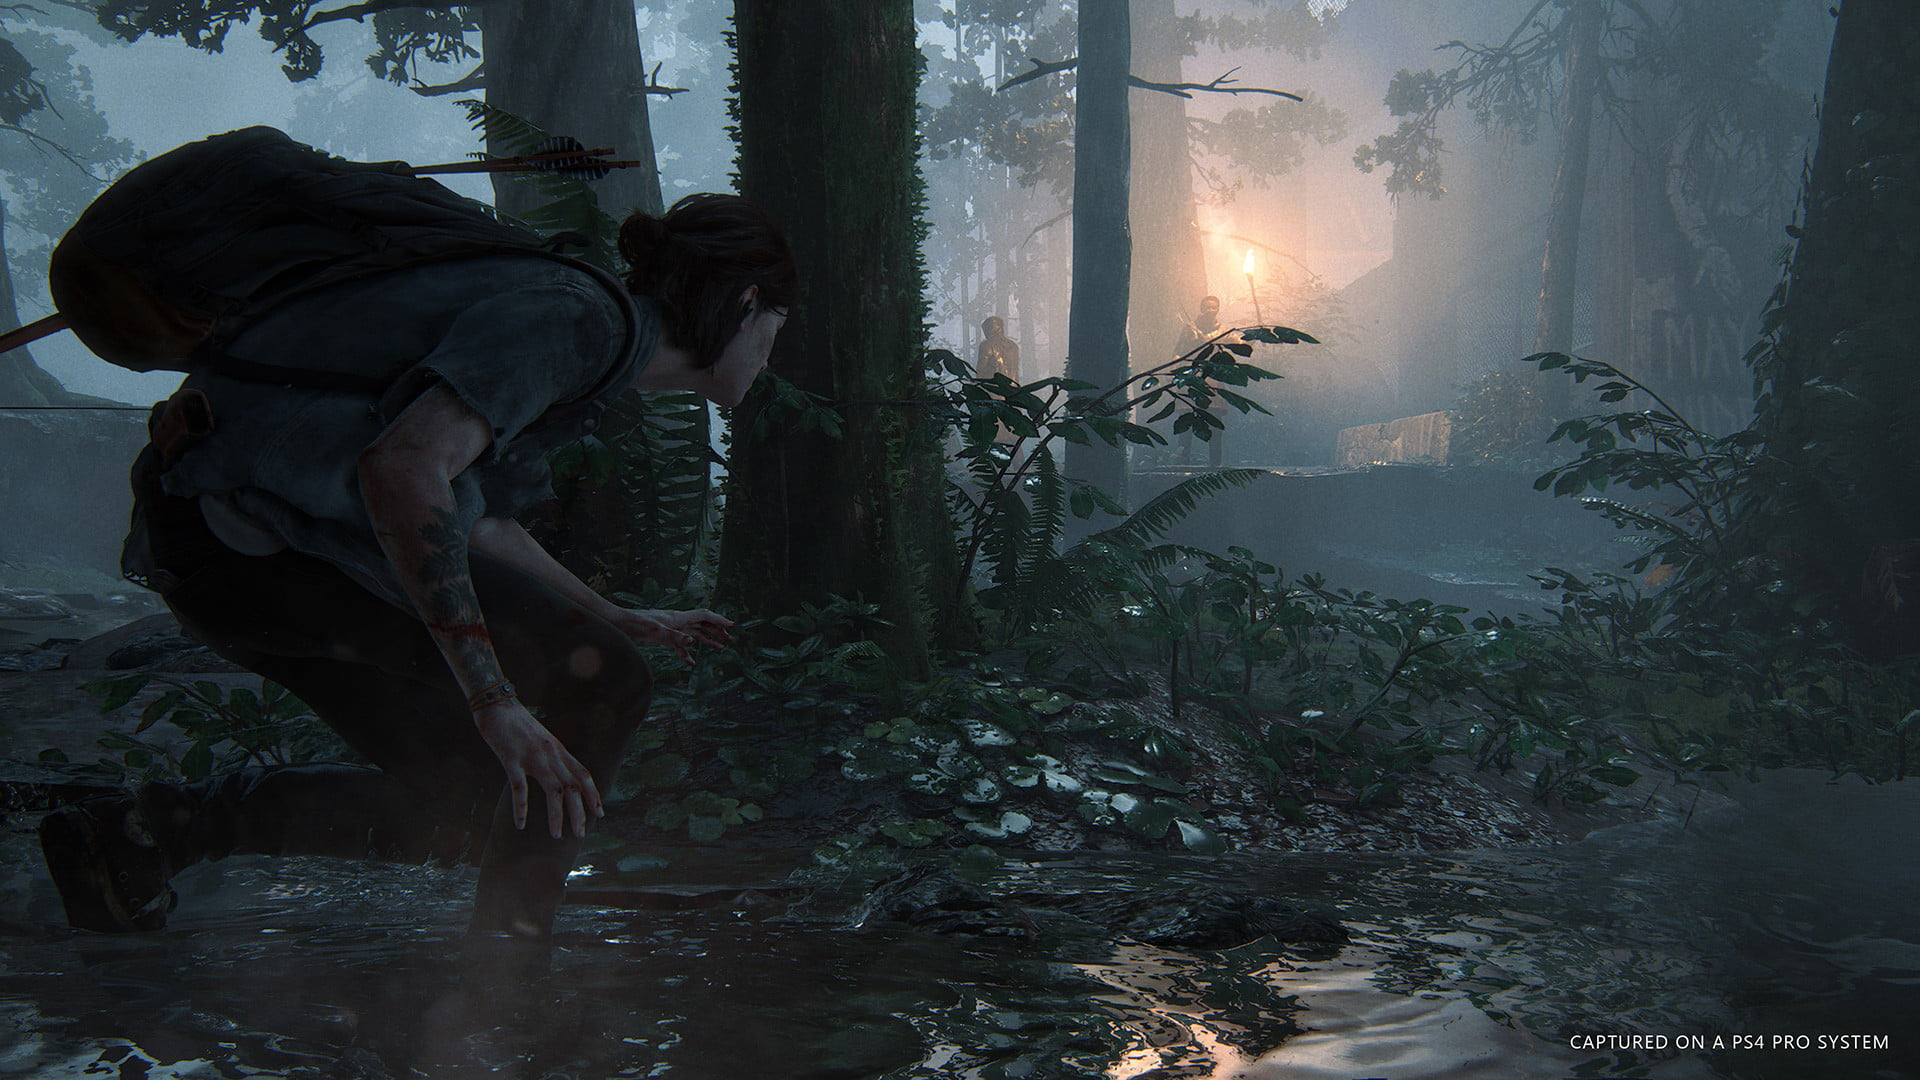 We'll see more of The Last of Us Part II next week